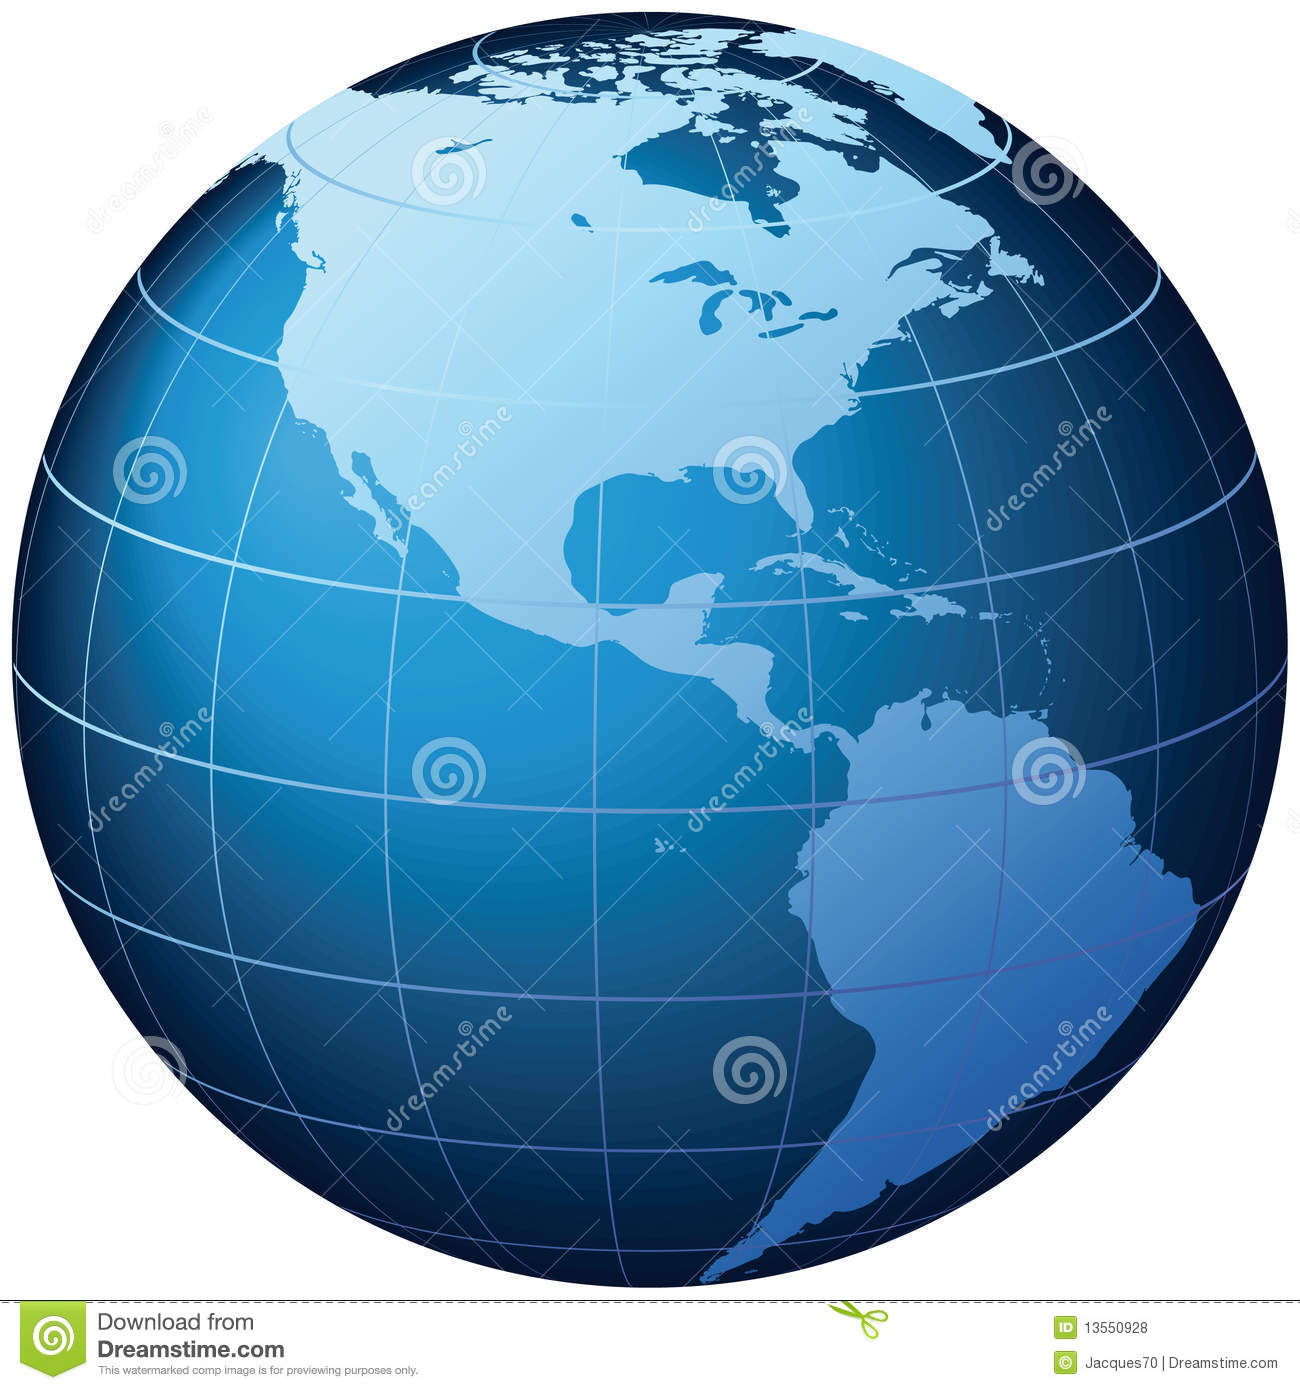 Map Of The World Globe View.World Globe Usa View Vector Stock Vector Illustration Of